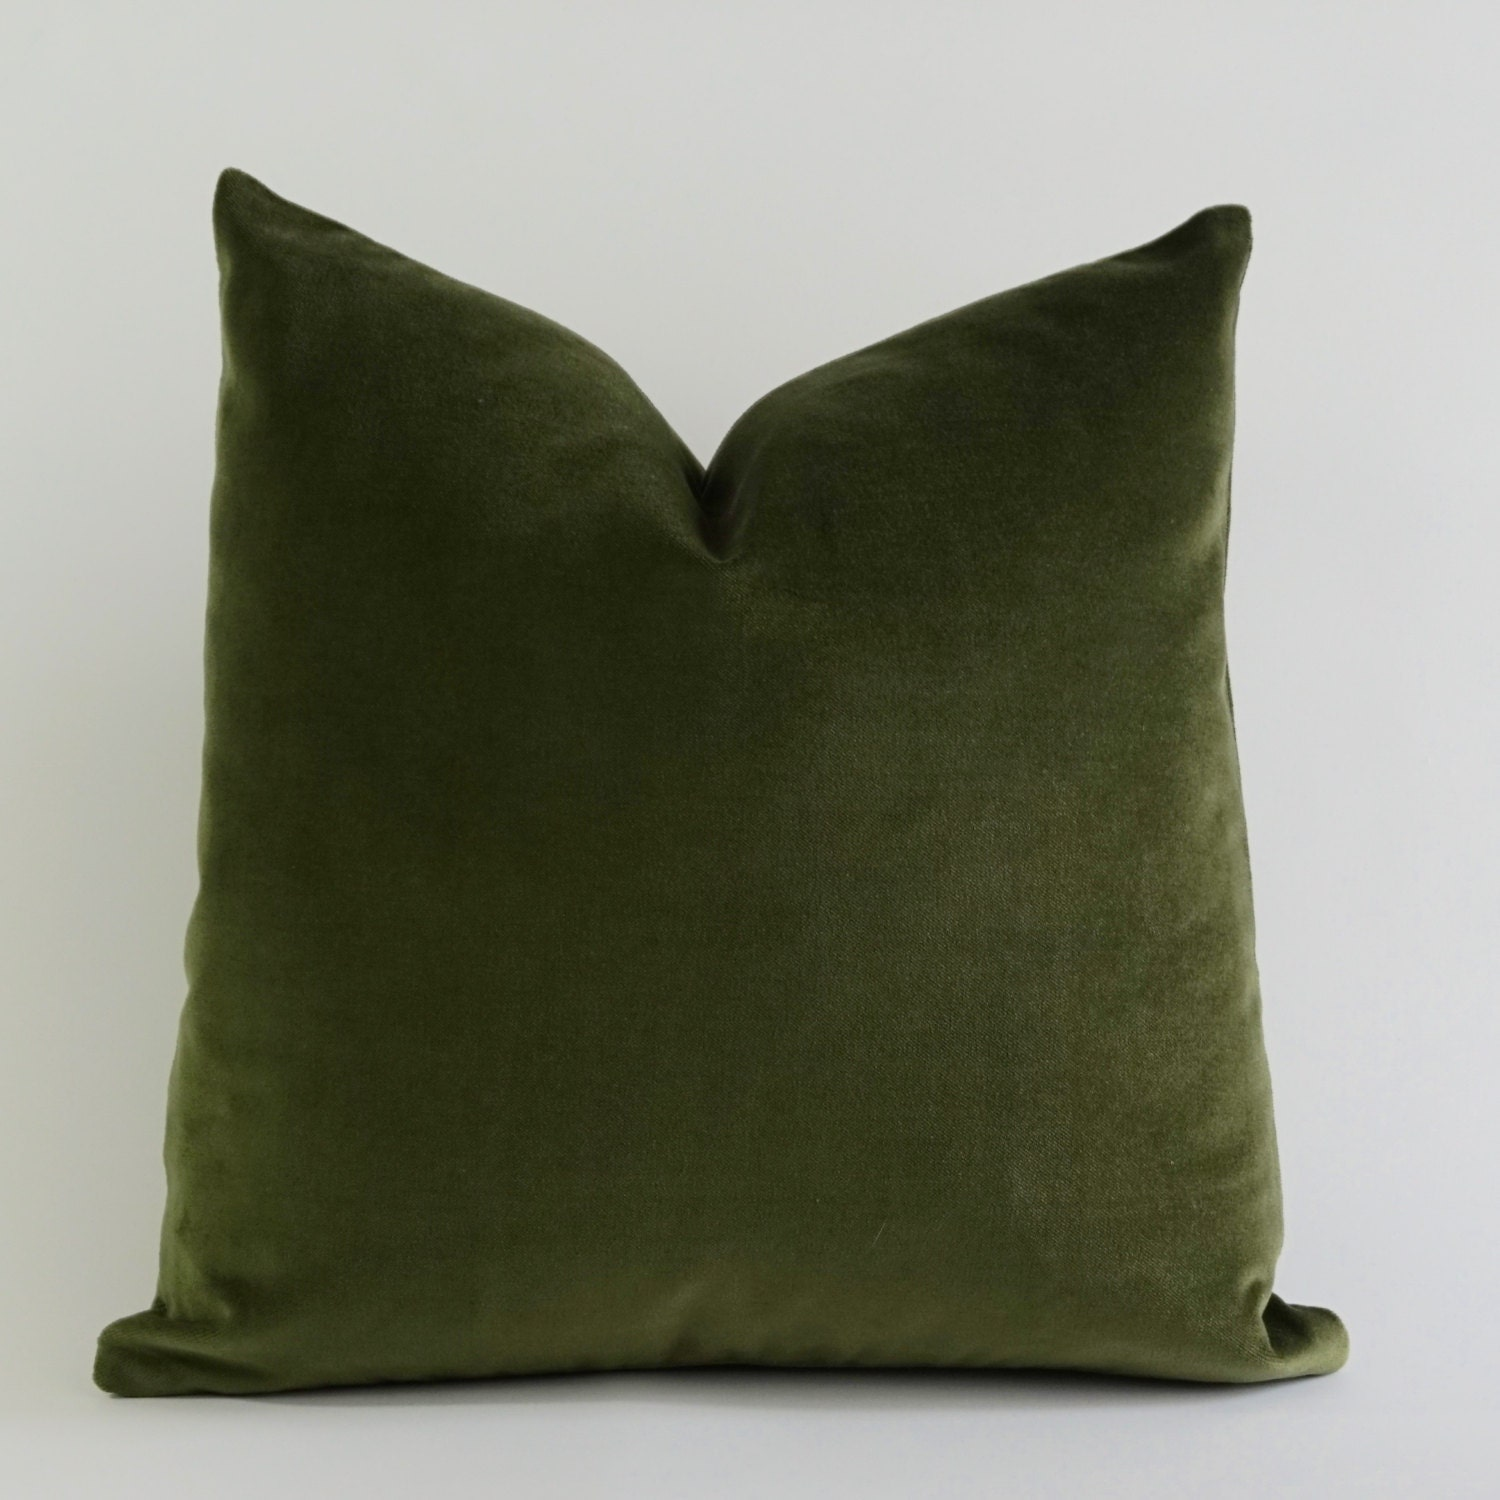 olive green pillows. Olive Green Cotton Velvet Pillow Cover - Decorative Accent Throw Pillows Invisible Zipper Closure Knife Or Piping Edge -16x16 To 26x26